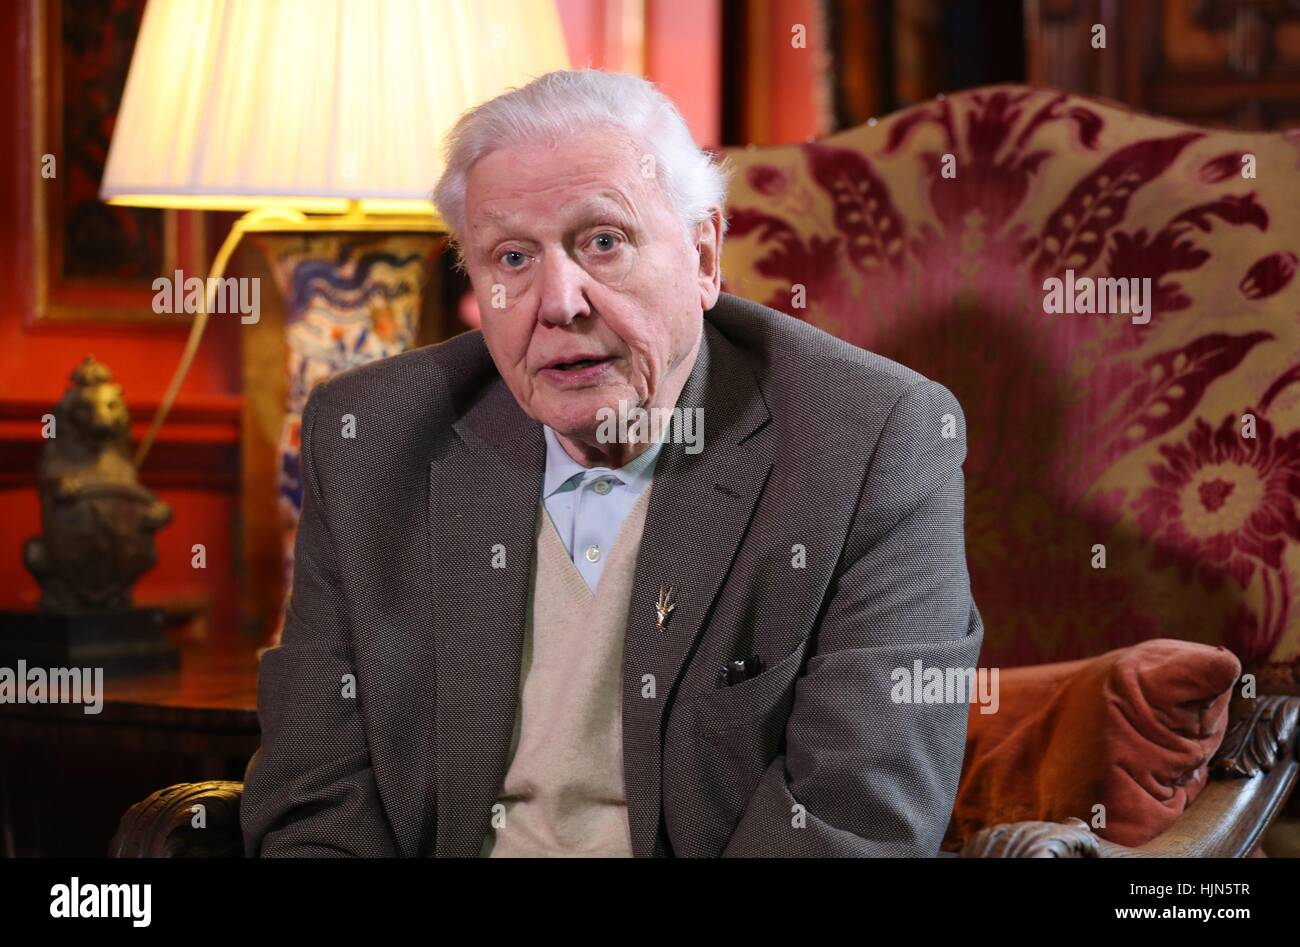 Sir David Attenborough Speaks To The Media At Prestonfield